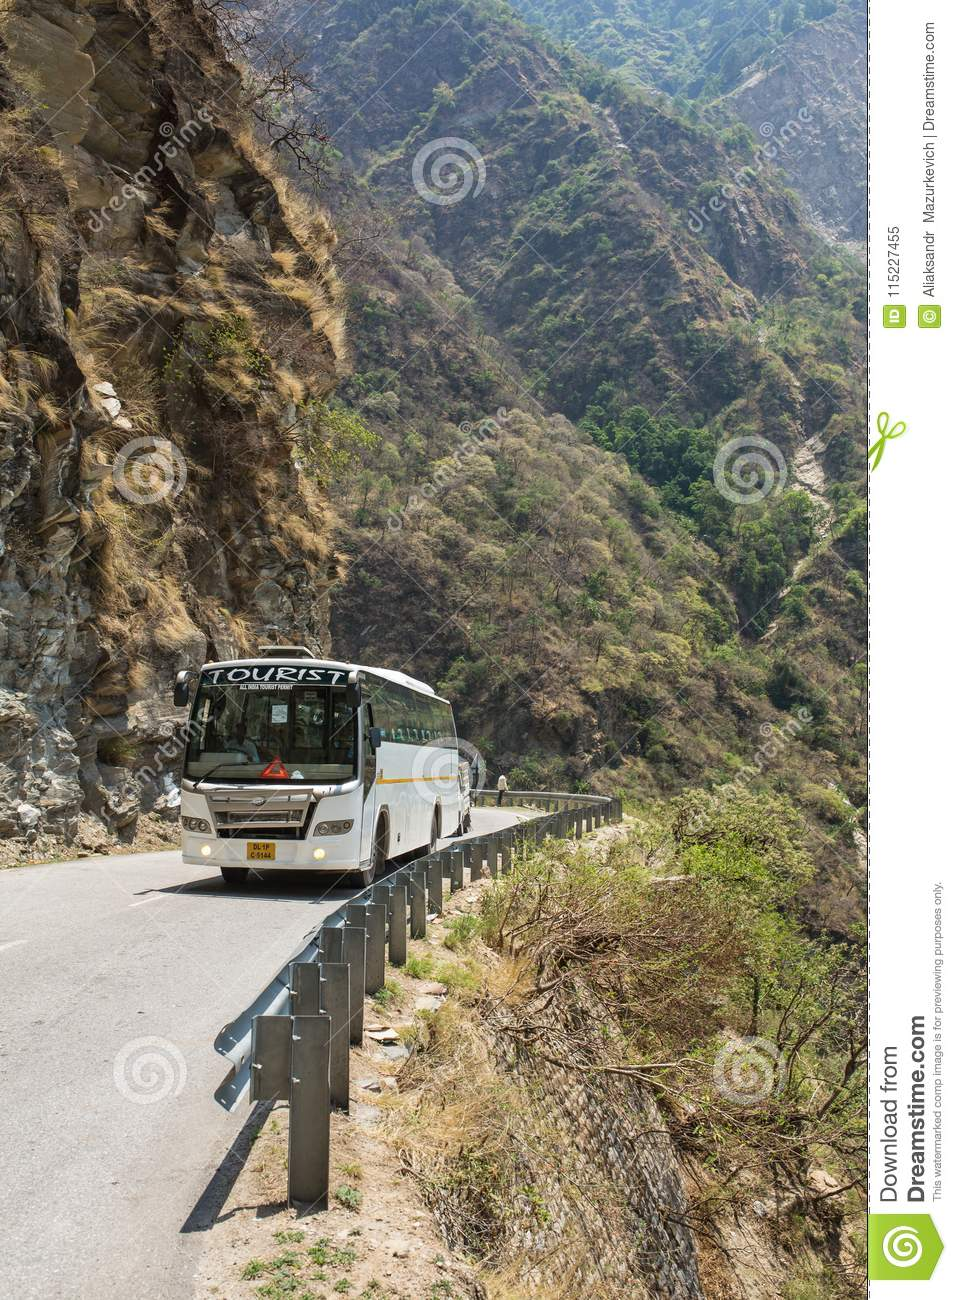 Tourist bus driving on dangerous mountain road in Himalayas on the way from Mandi to Manali